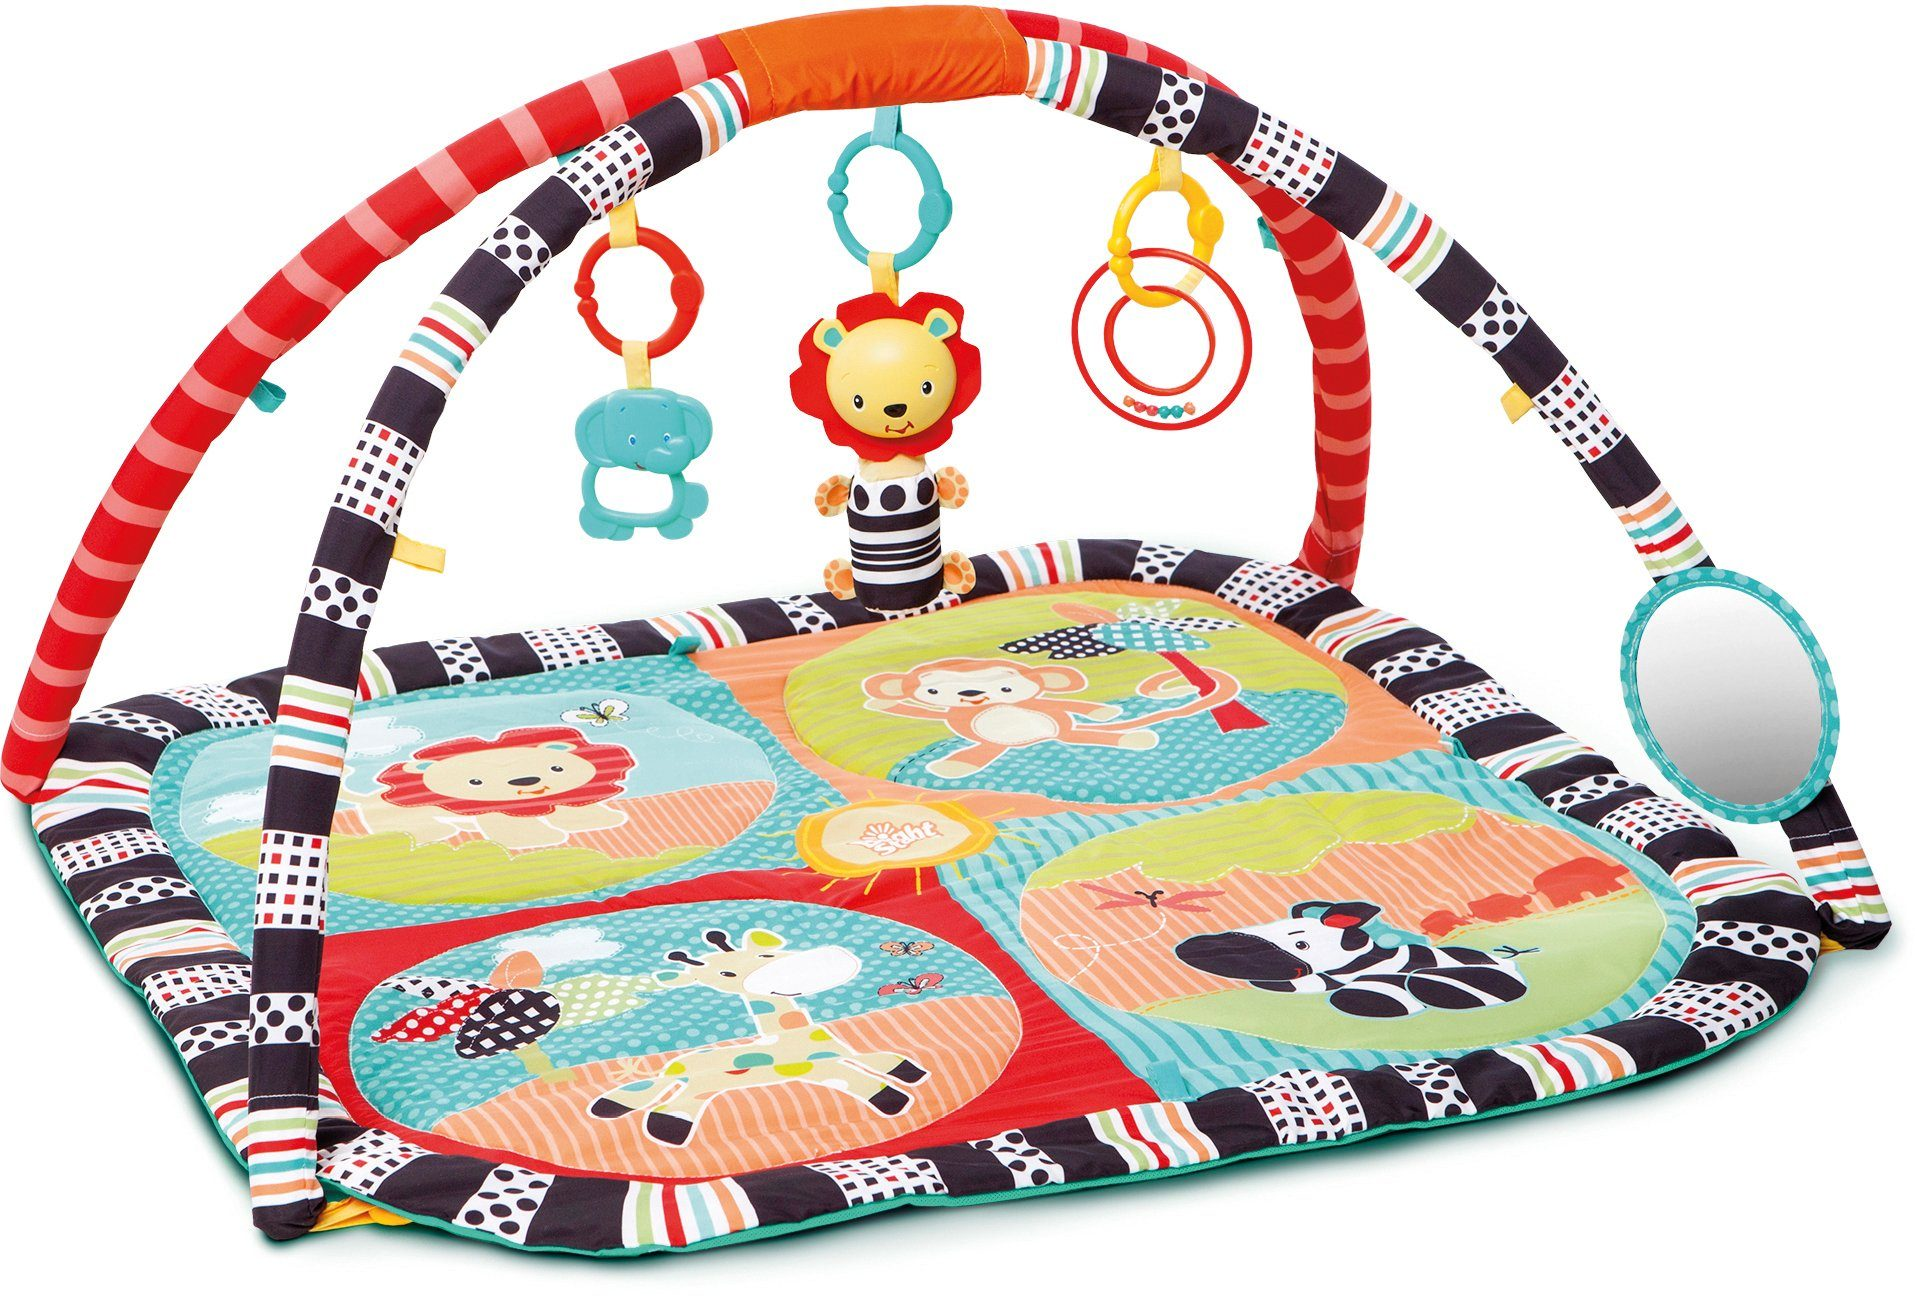 Kids II Krabbeldecke mit Spielbogen, »Roaming Safari Activity Gym«